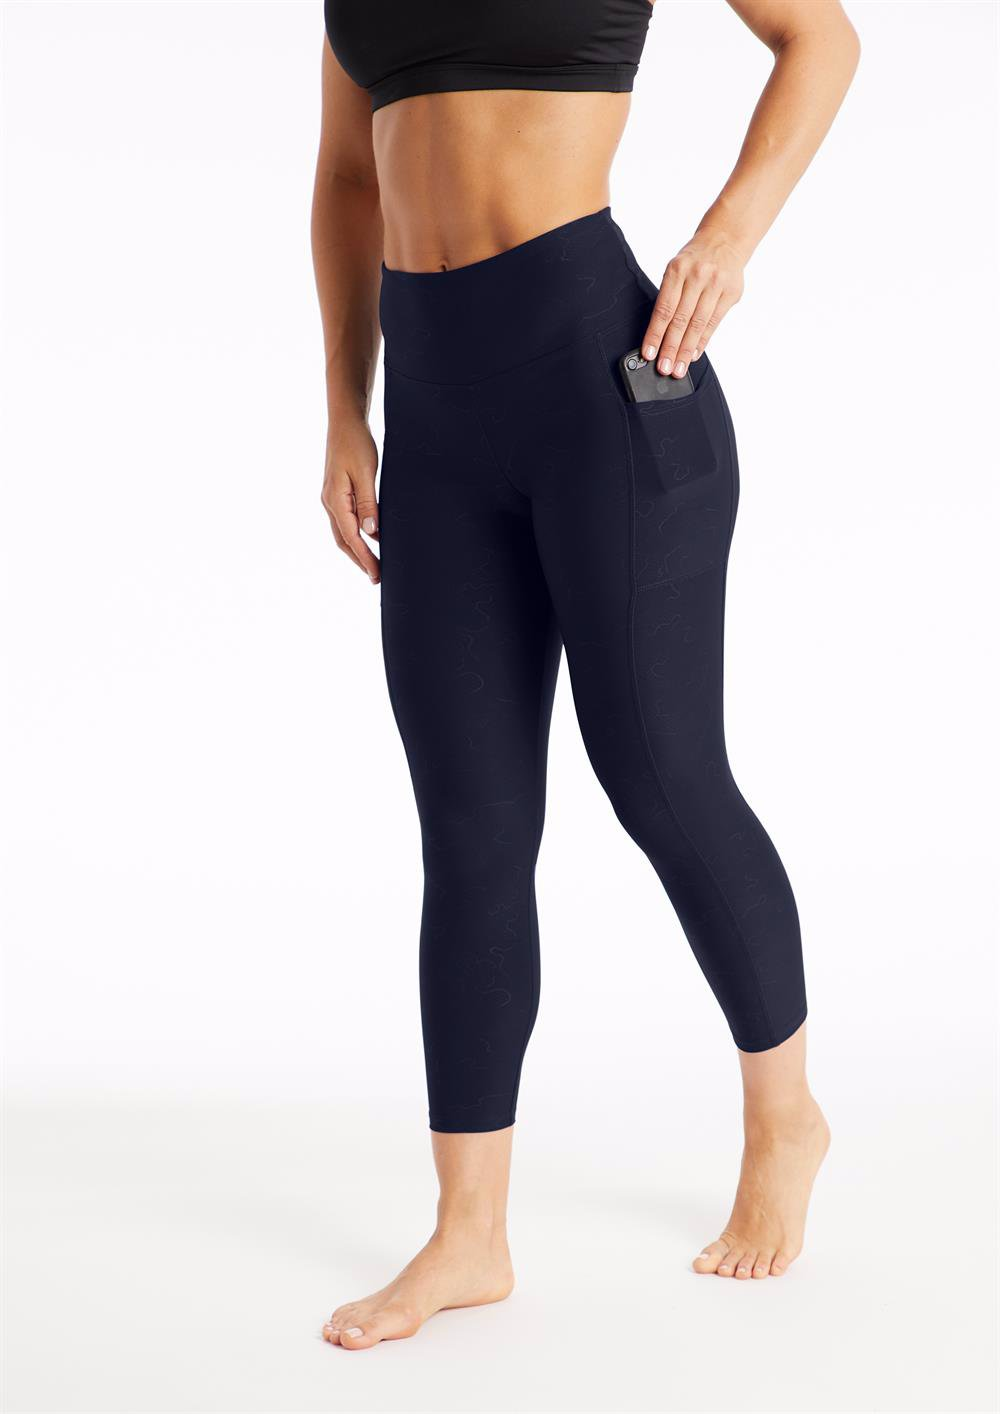 ef562e81ad896 BuyInvite | Bally Total Fitness Legging